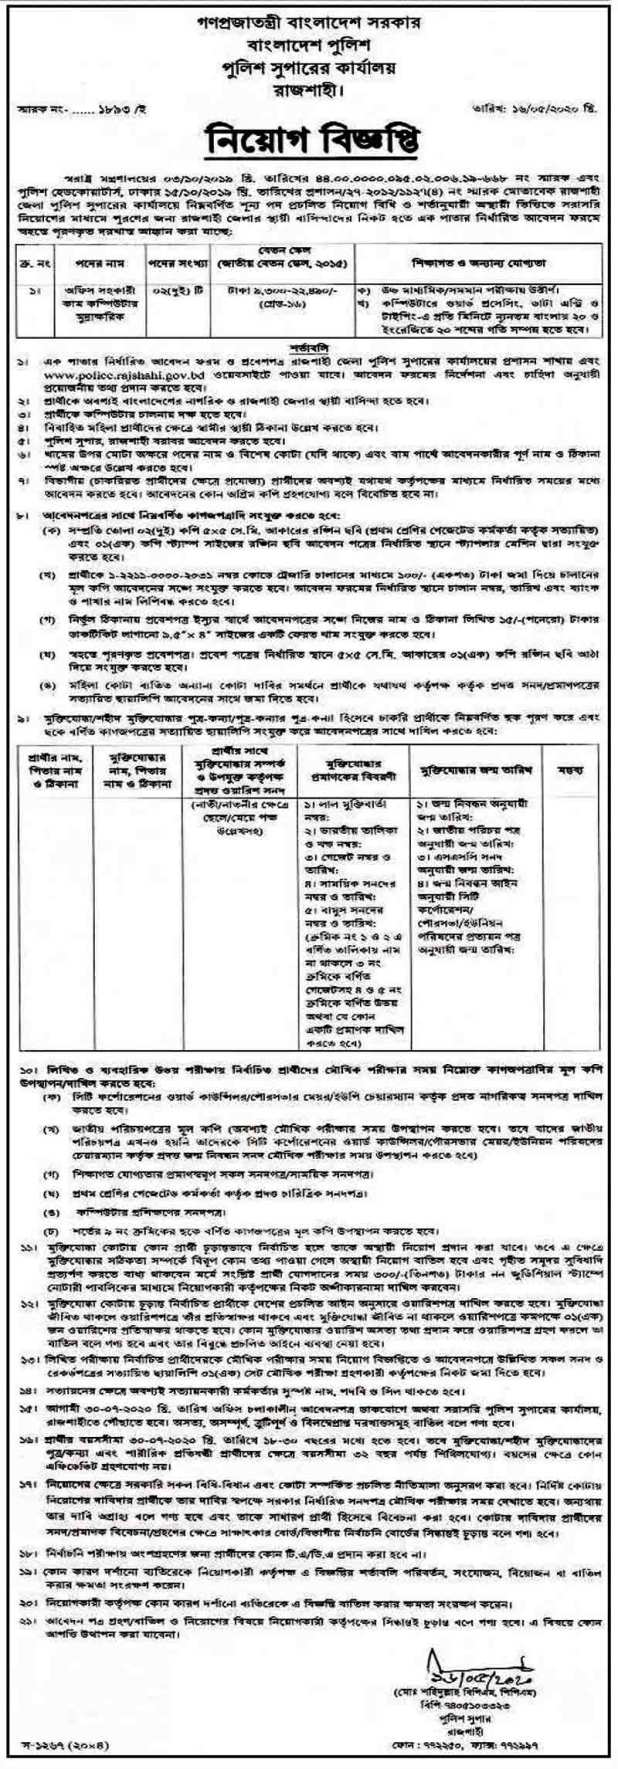 Rajshahi Police Super (SP) Office Job Circular 2020